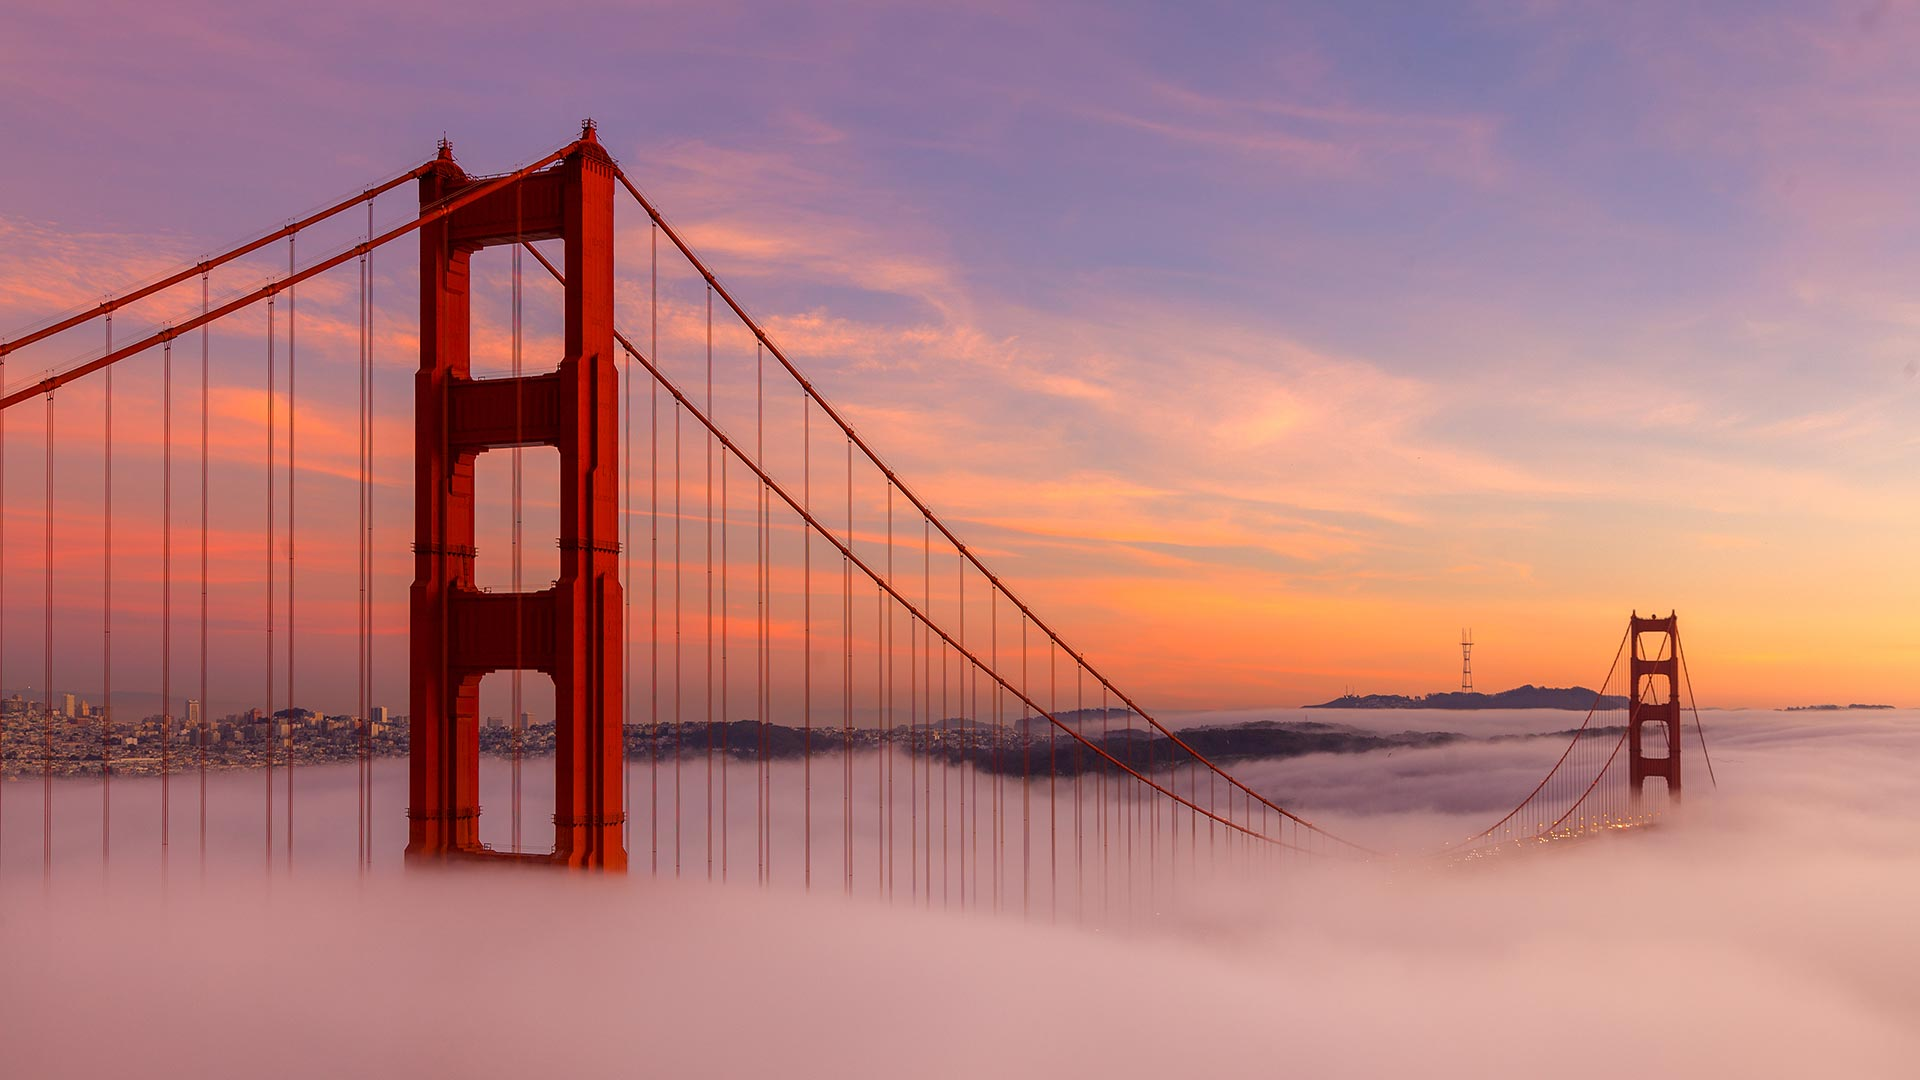 Golden Gate Bridge at sunrise with fog